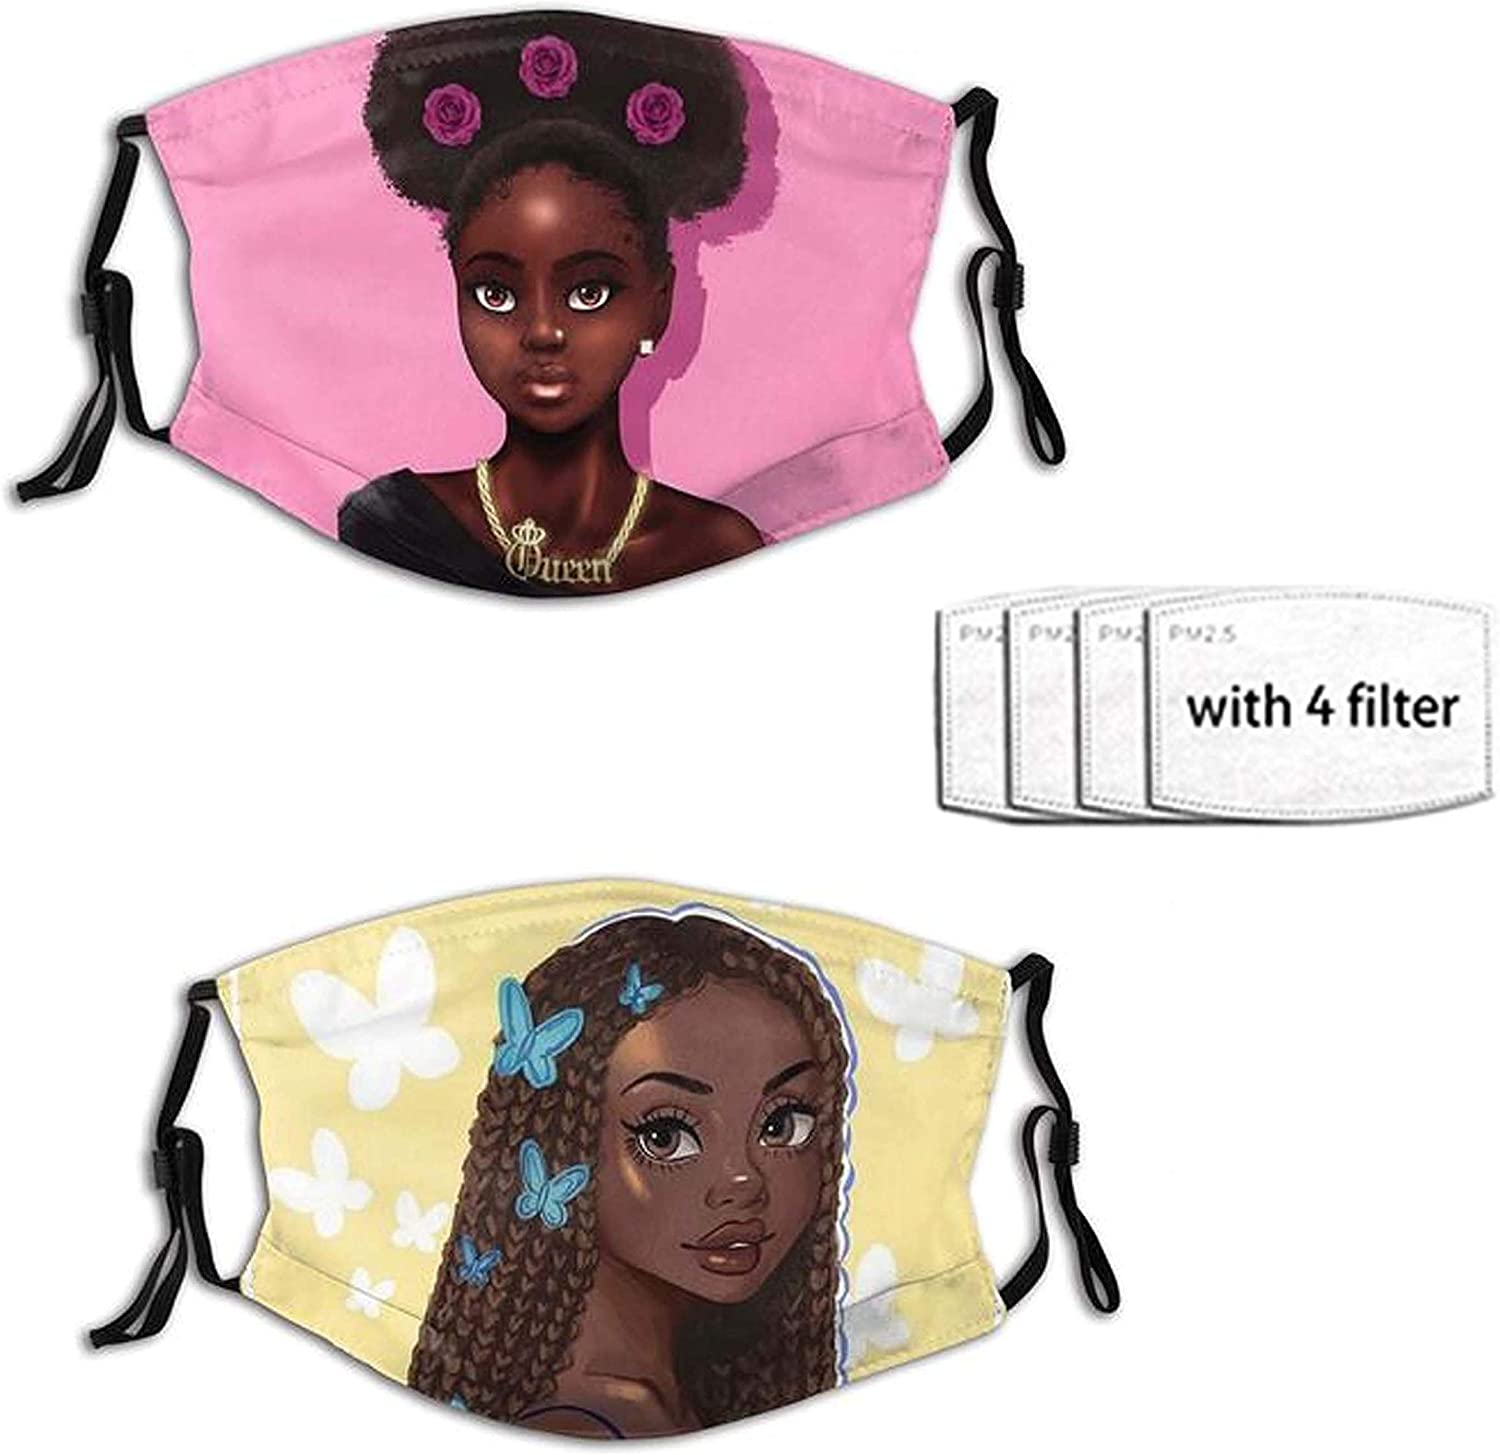 2 PCS African American Women Girl Face Mask for Adults Teens,Reusable Fashion Scarves Waterproof With 4 Filters for Women Men